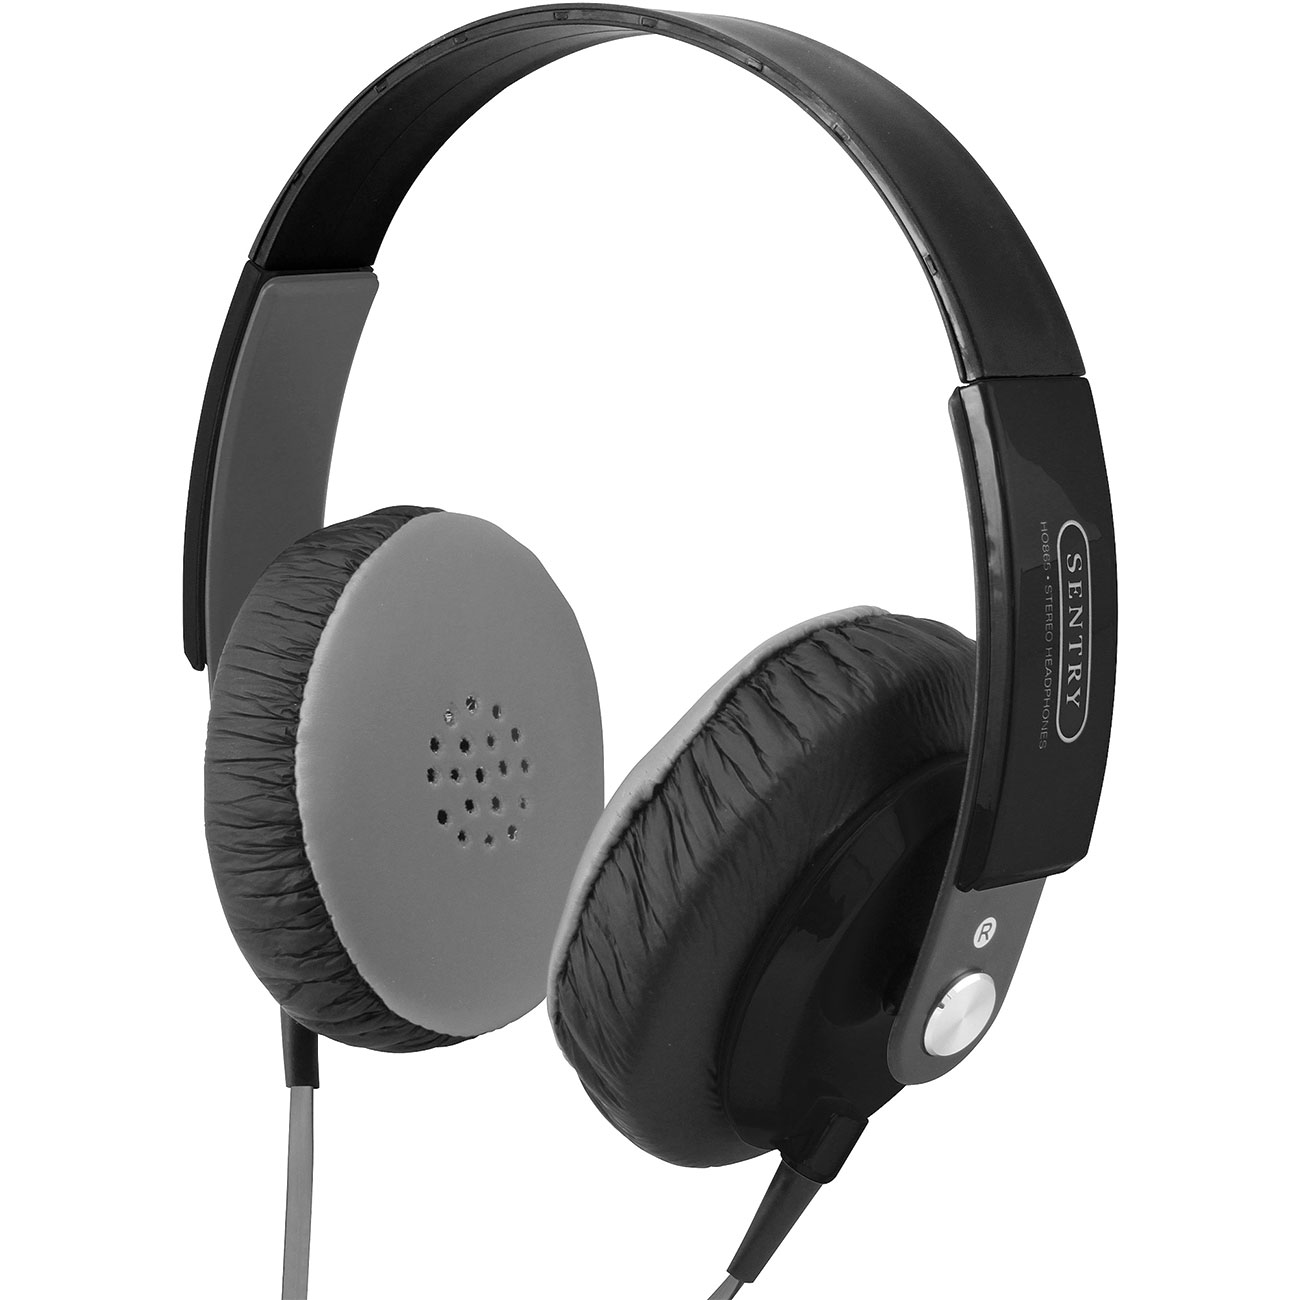 Digital Stereo Headphones w- In-Line Volume Control Price: $13.95